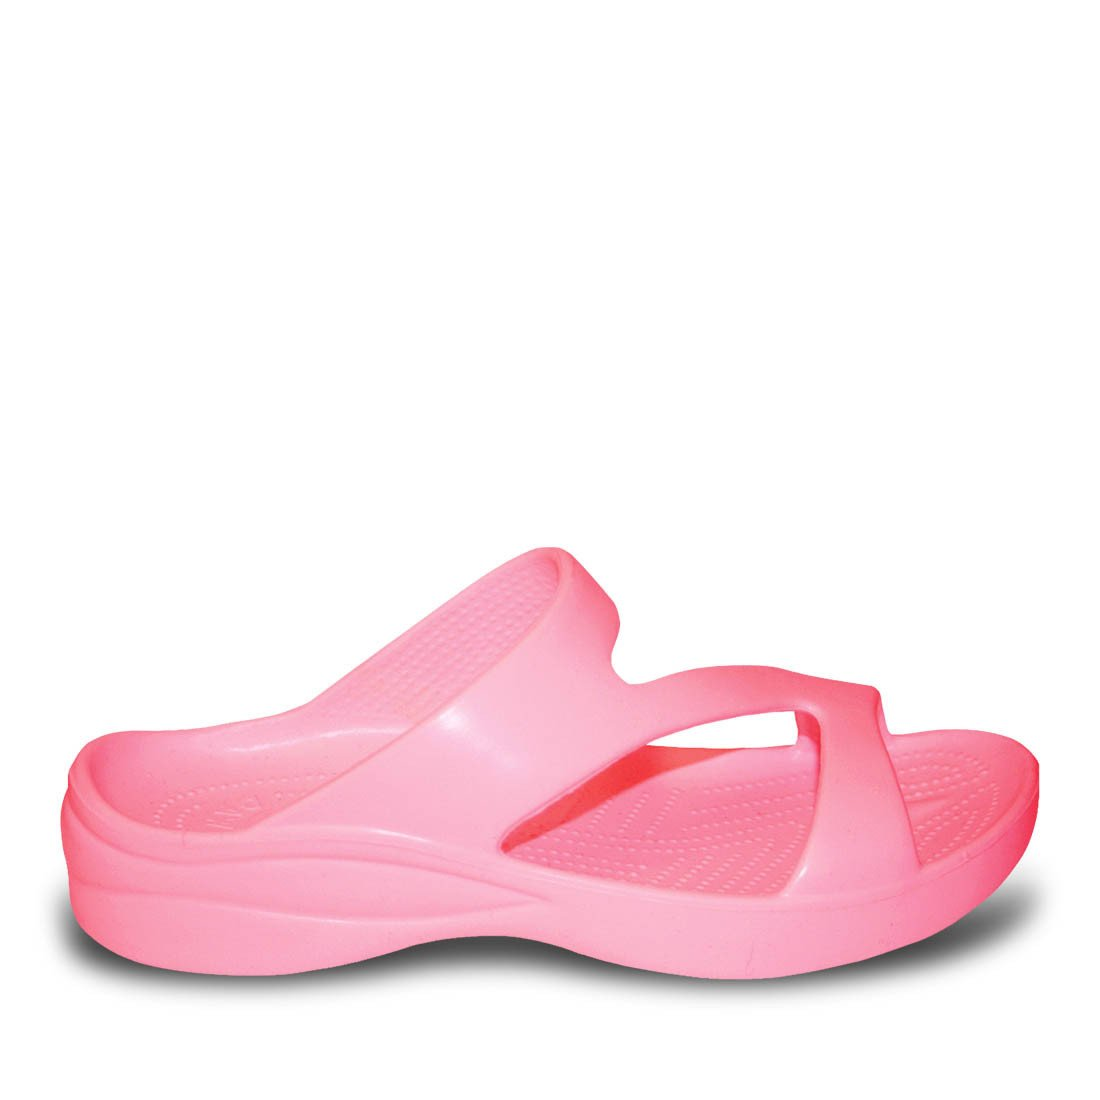 Image of Women's Z Sandals - Soft Pink